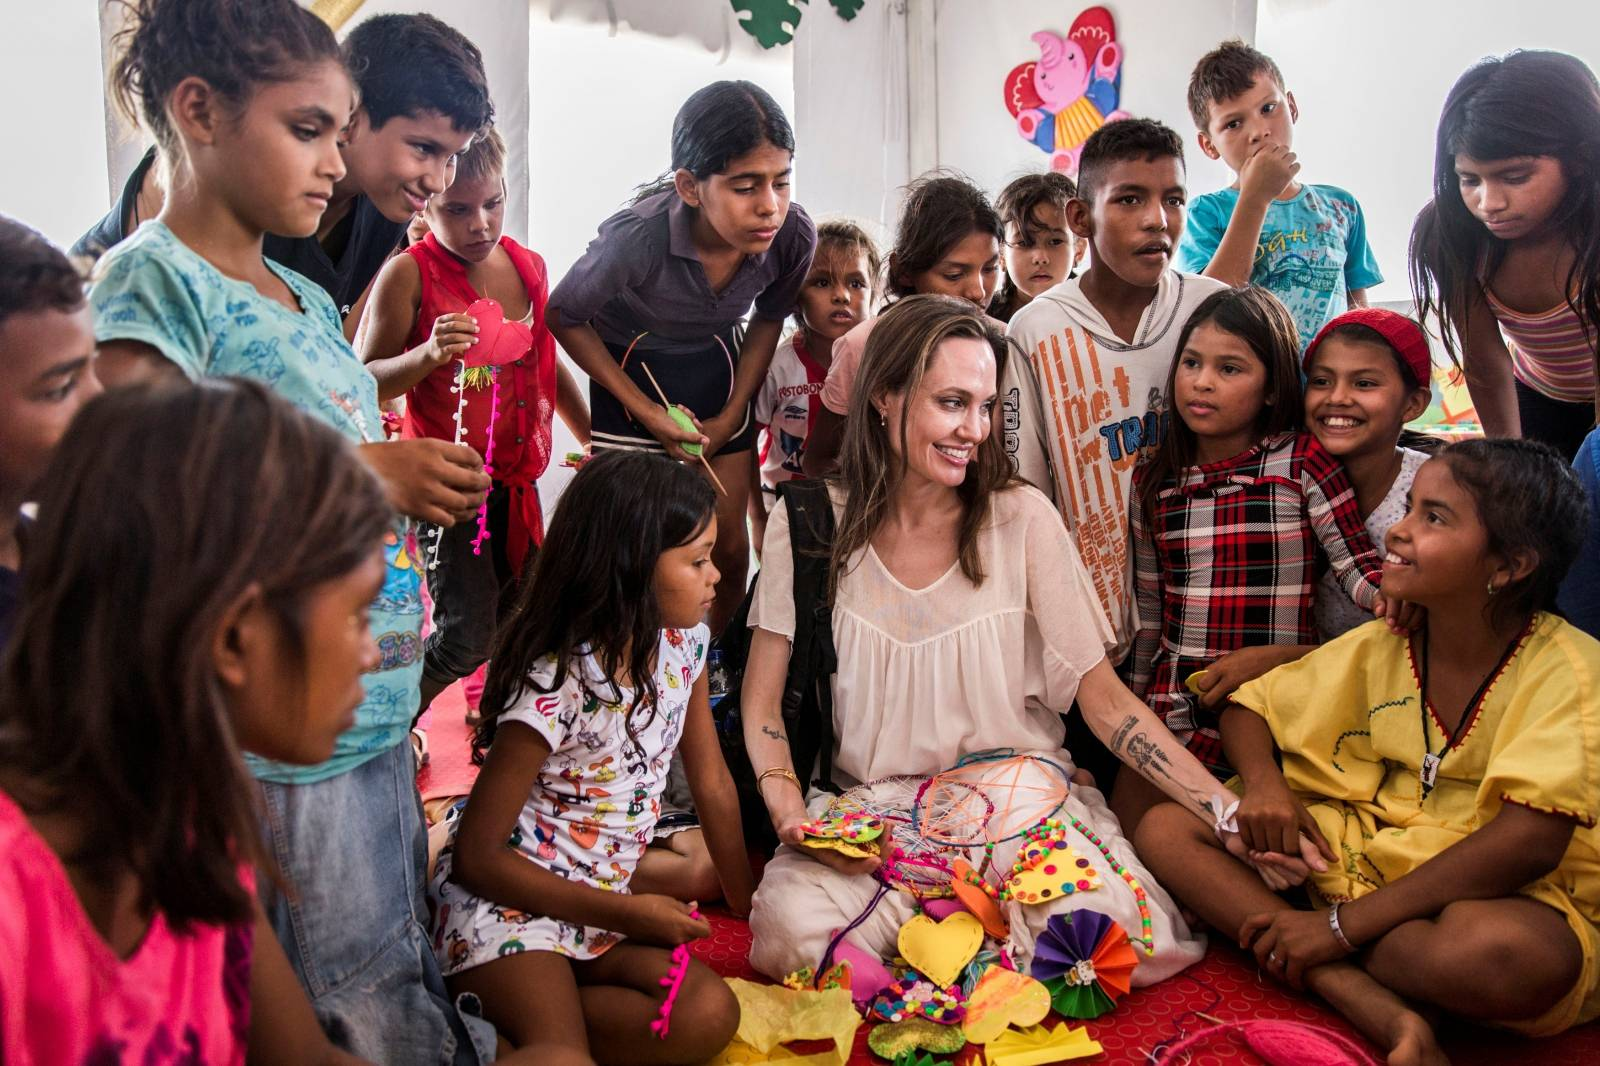 UNHCR Special Envoy Angelina Jolie meets with children at the Integrated Assistance Centre, in Maicao